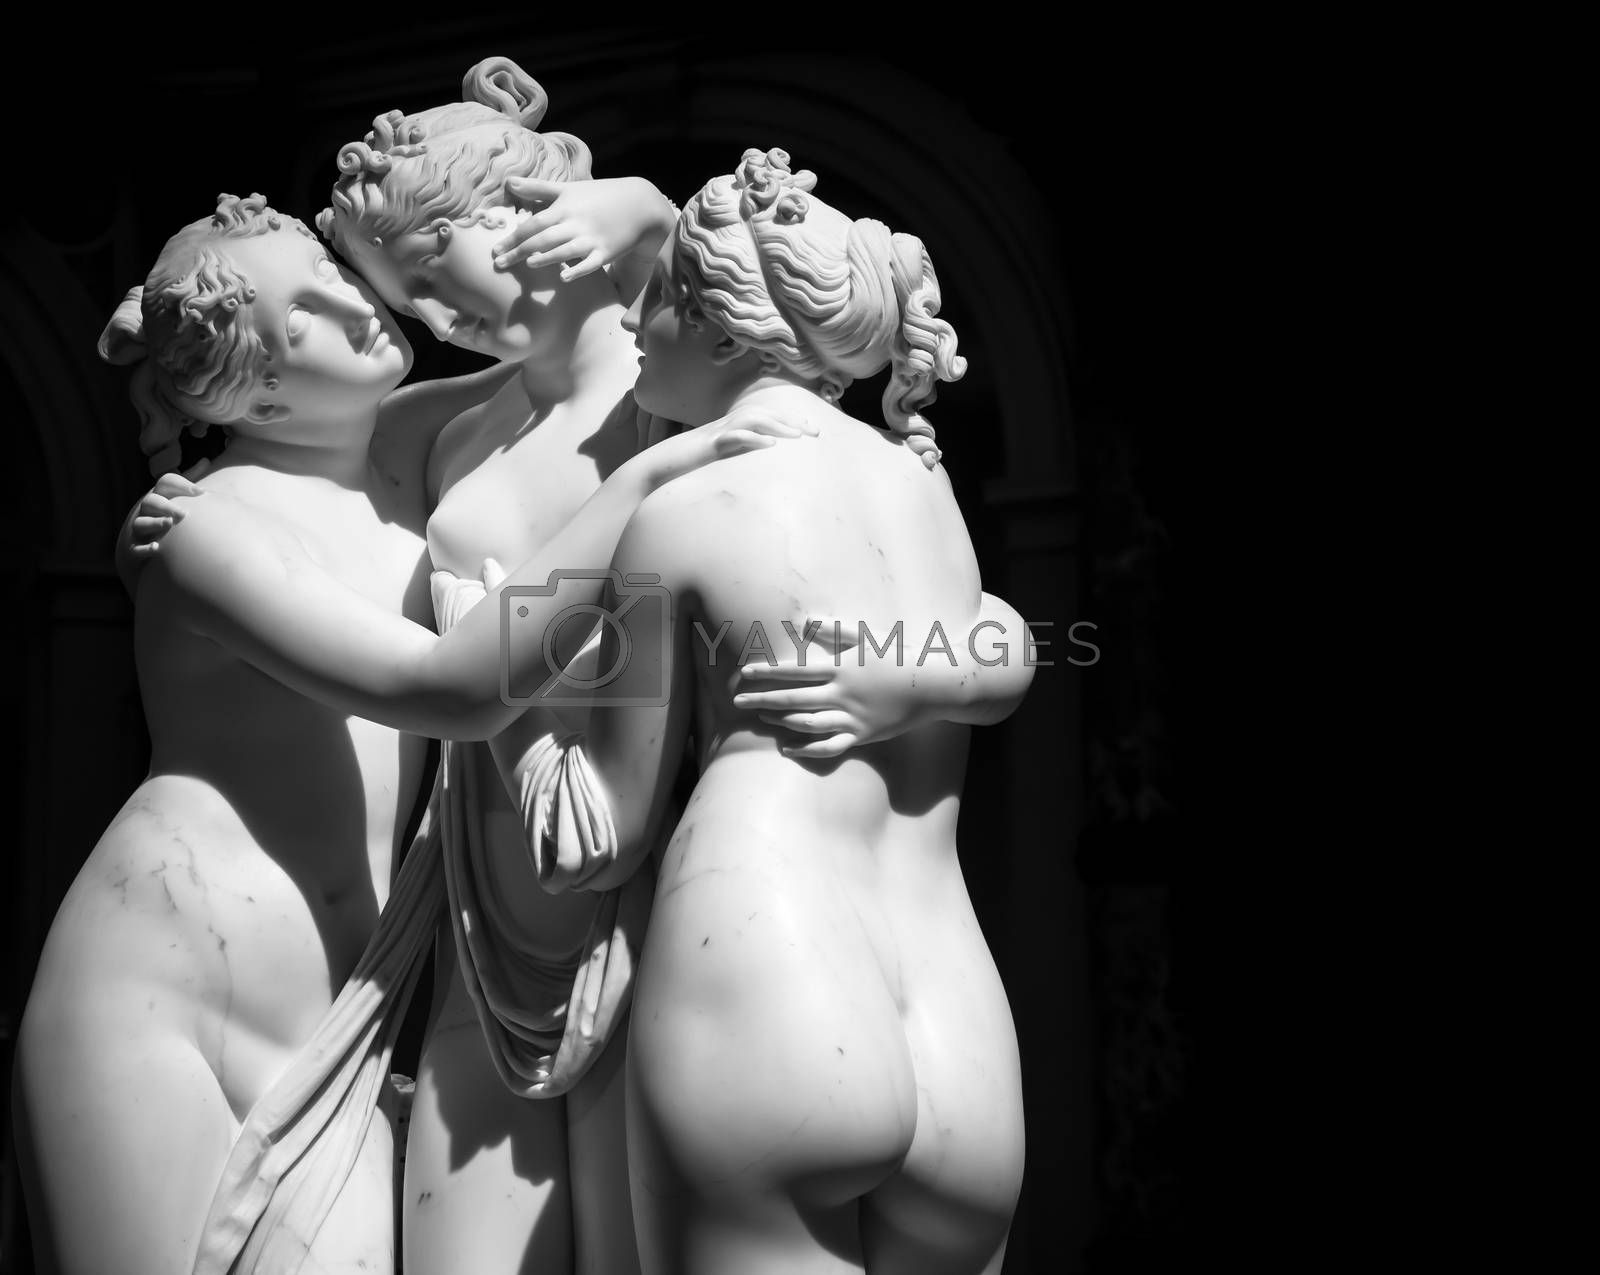 The Three Graces (Le tre grazie) by Antonio Canova by Perseomedusa